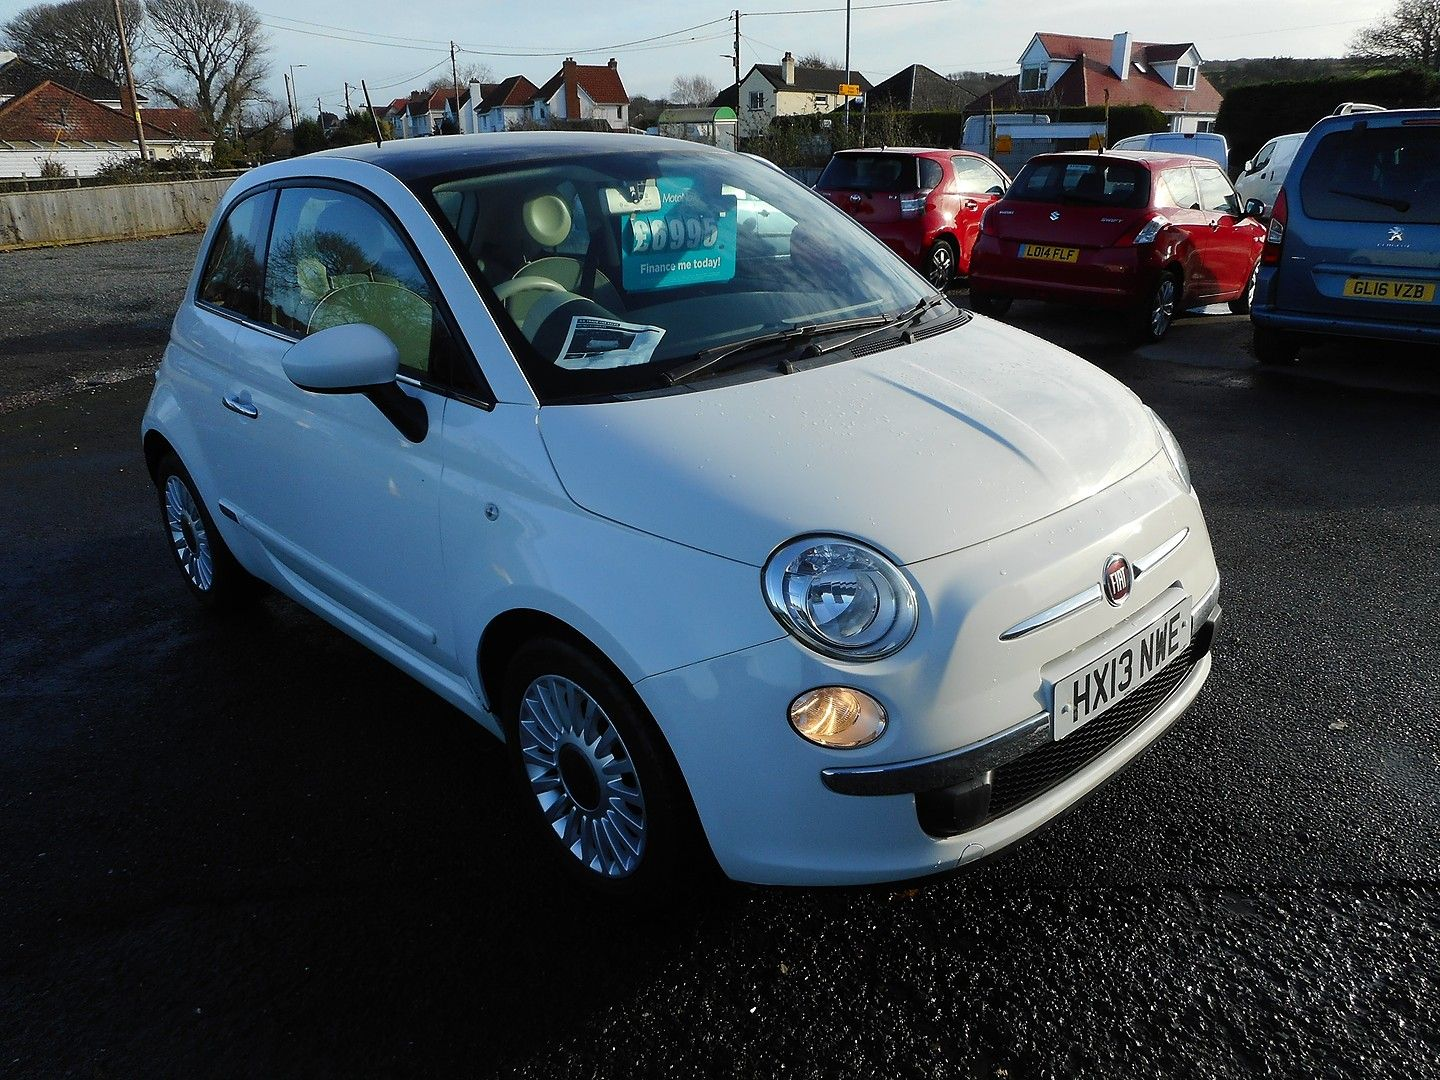 FIAT 500 1.2i Lounge S/S automatic (2013) - Picture 2